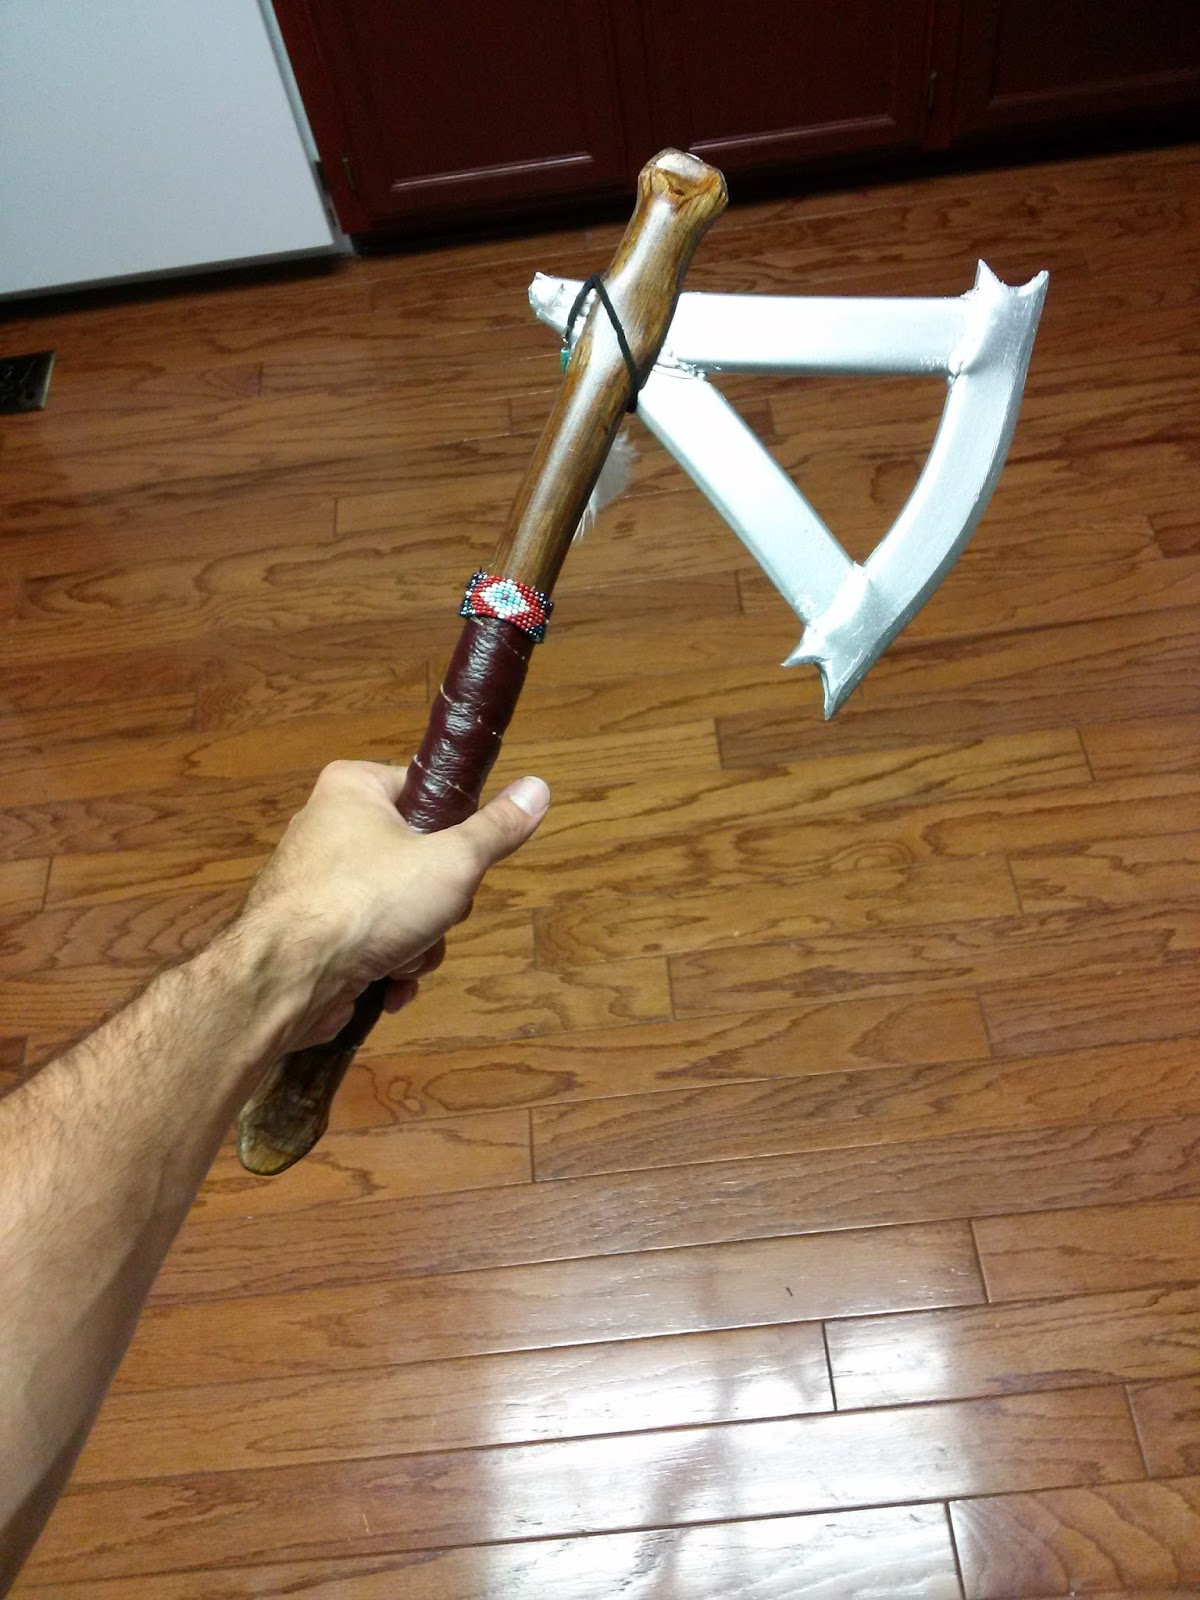 the finished ac3 connor kenway tomahawk pvc archery with golden